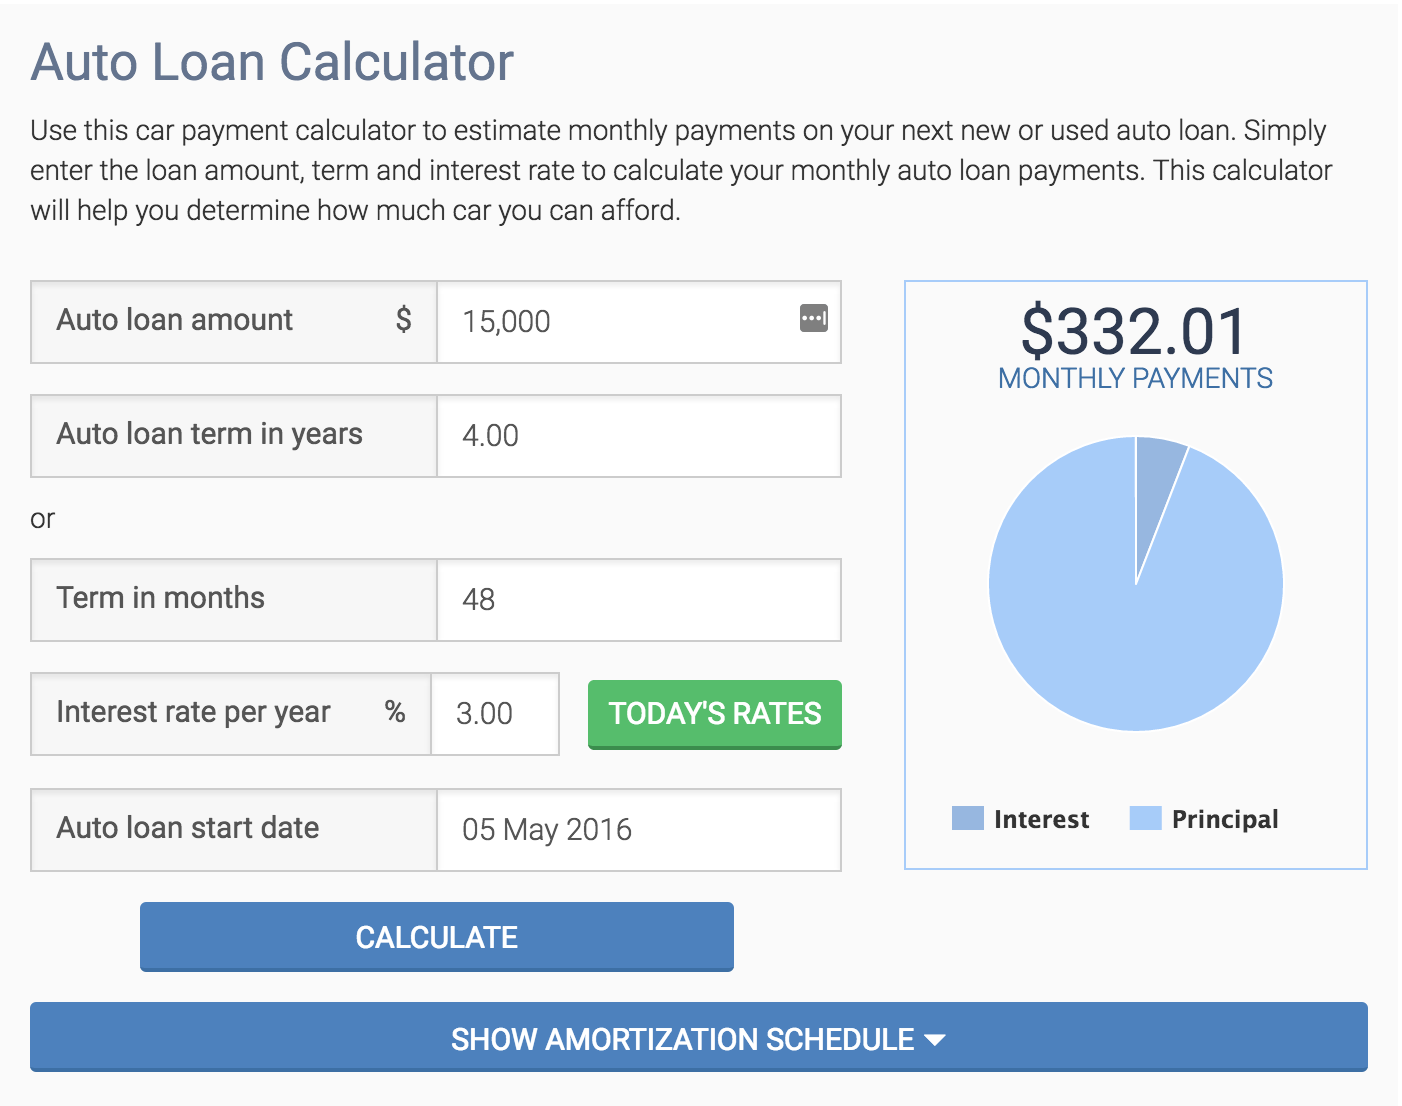 Http://www.bankrate.com/calculators/auto/auto